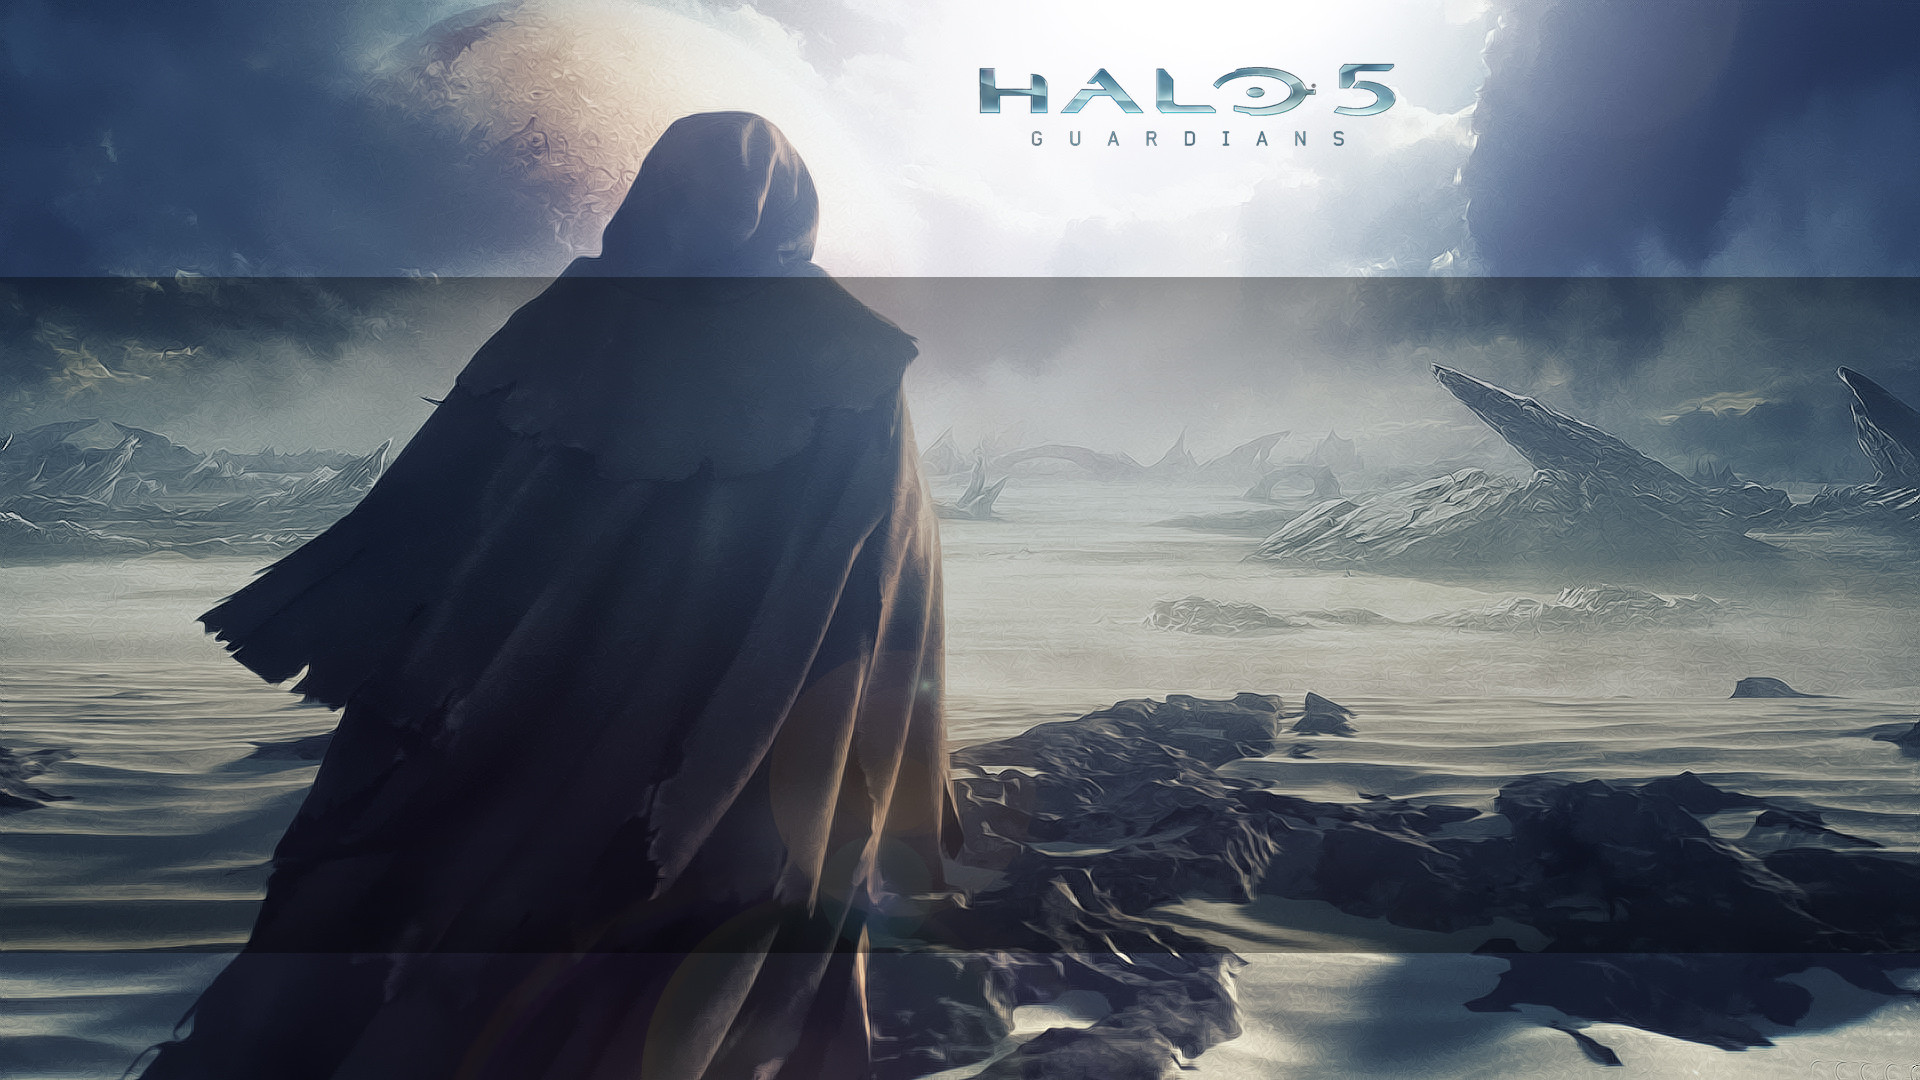 Halo 5 Guardians 1920x1080